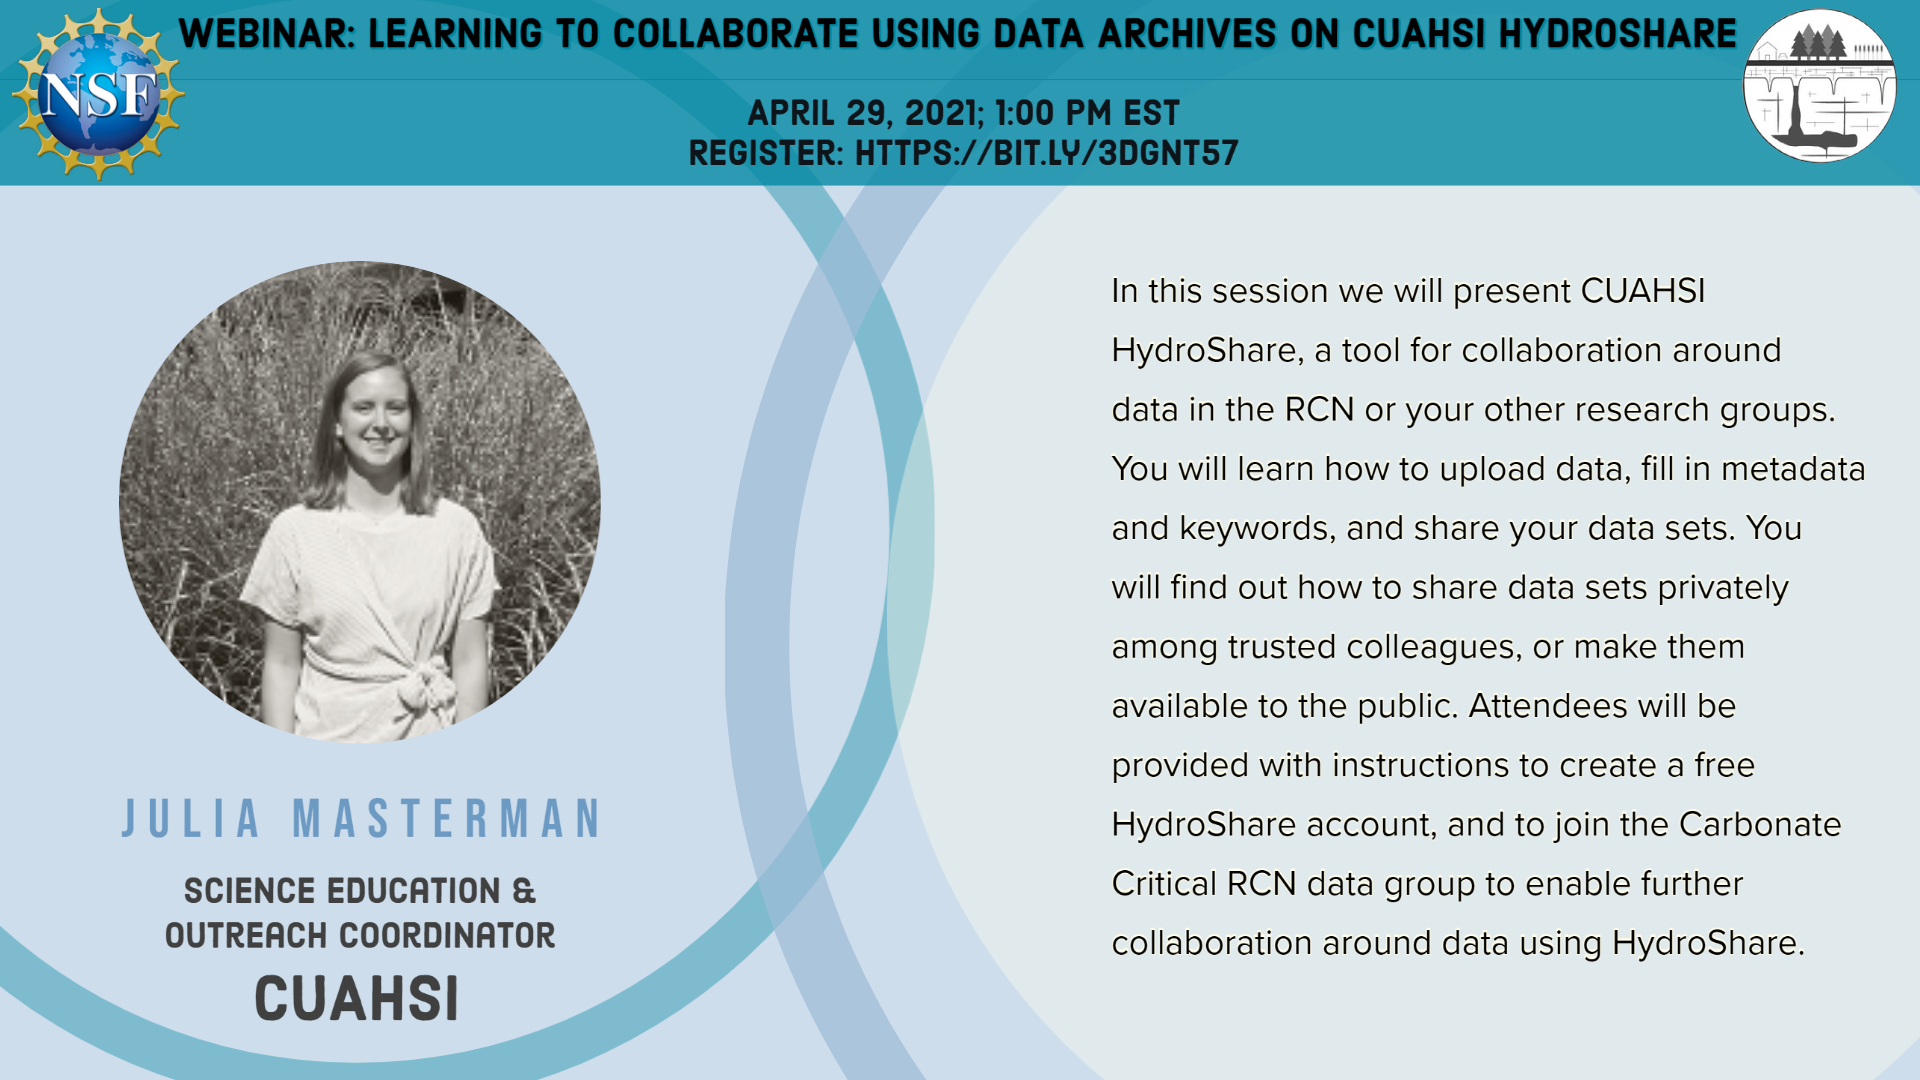 In this session we will present CUAHSI HydroShare, a tool for collaboration around data in the RCN or your other research groups. You will learn how to upload data, fill in metadata and keywords, and share your data sets. You will find out how to share data sets privately among trusted colleagues, or make them available to the public. Attendees will be provided with instructions to create a free HydroShare account, and to join the Carbonate Critical RCN data group to enable further collaboration around data using HydroShare.